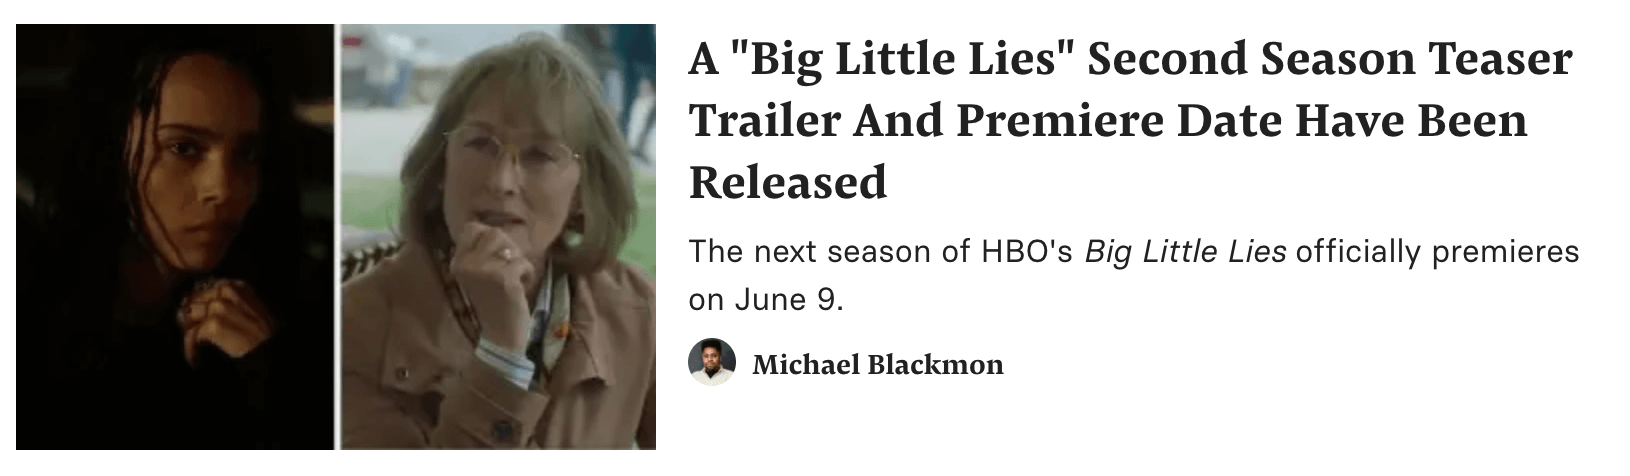 A Buzzfeed article headline about the new trailer and release date for Big Little Lies.